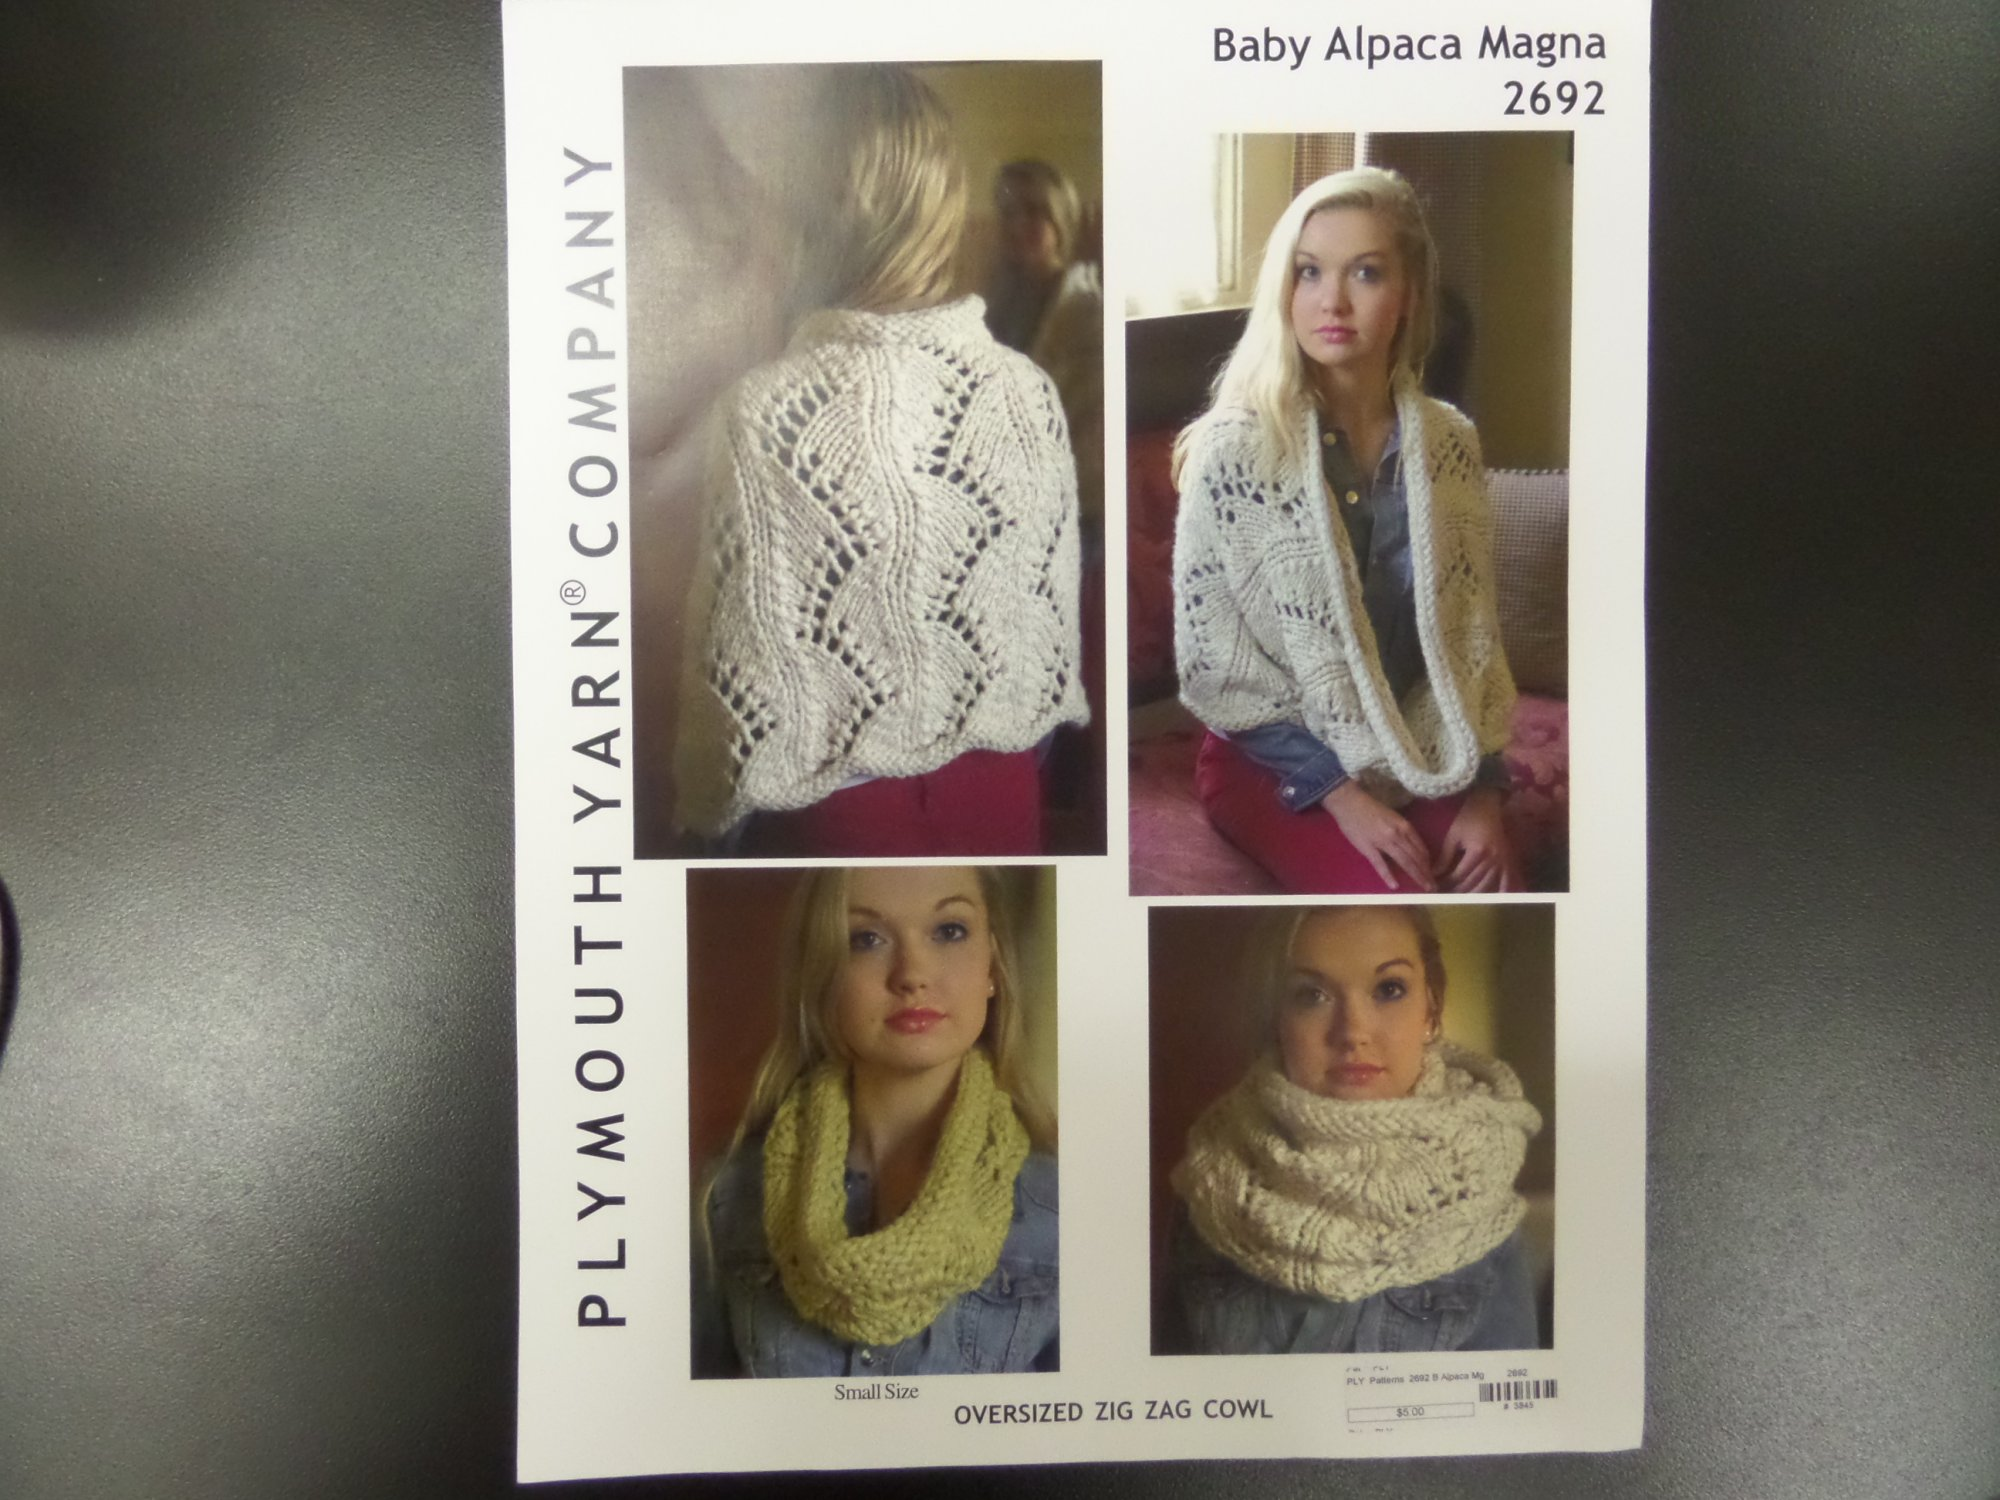 Baby Alpaca Magna patterns by Plymouth